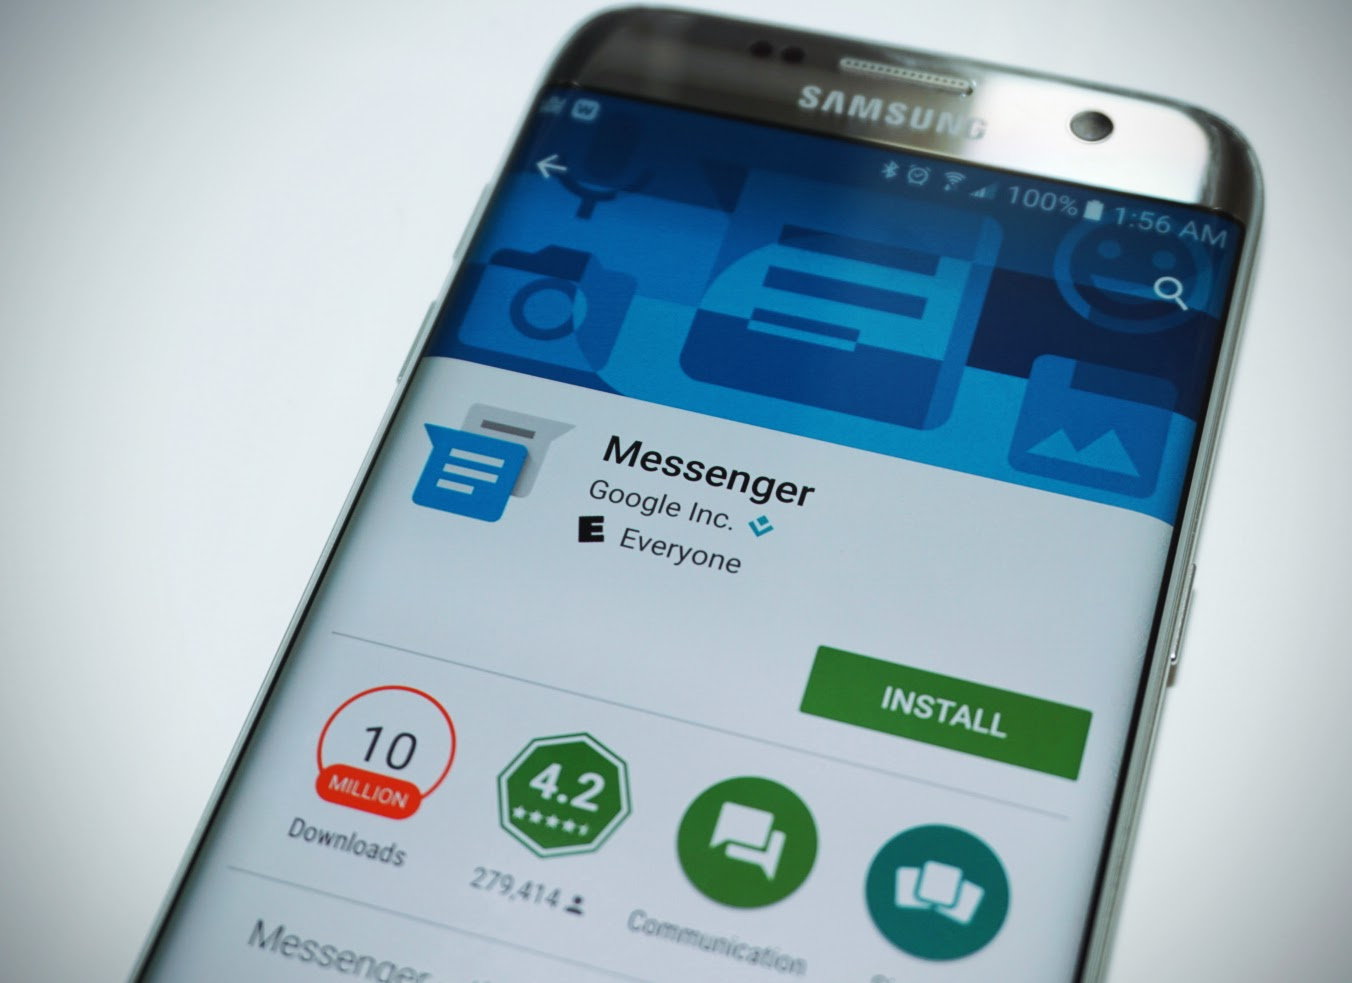 google messenger is the best all around texting app for android devices rh androidguys com Verizon Samsung Touch Screen Phone Samsung Messages